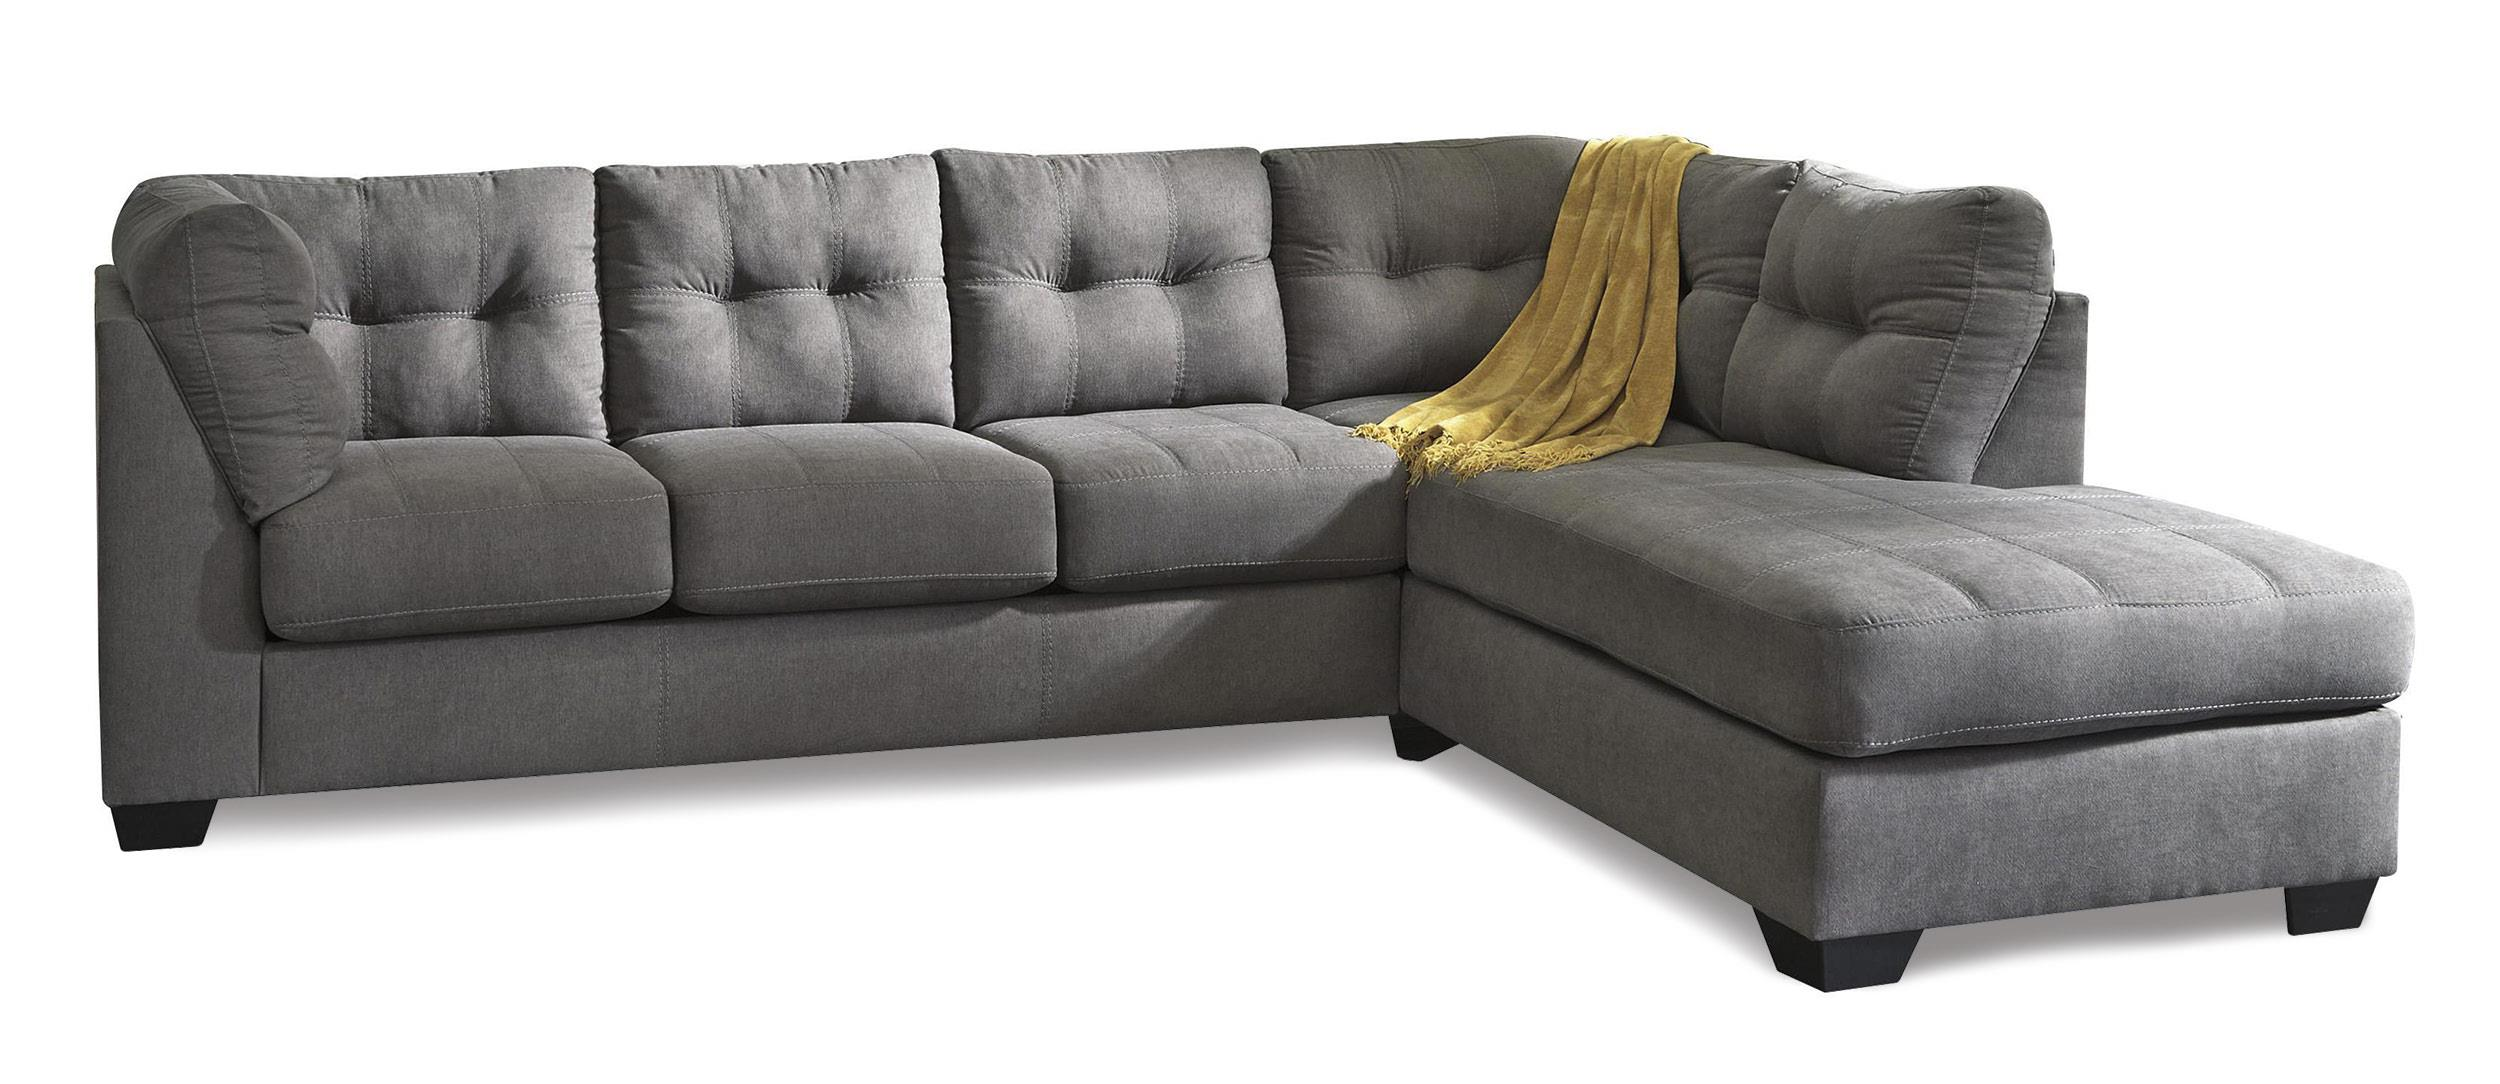 room bc living calicho ecru right sectionals benchcraft sectional chaise